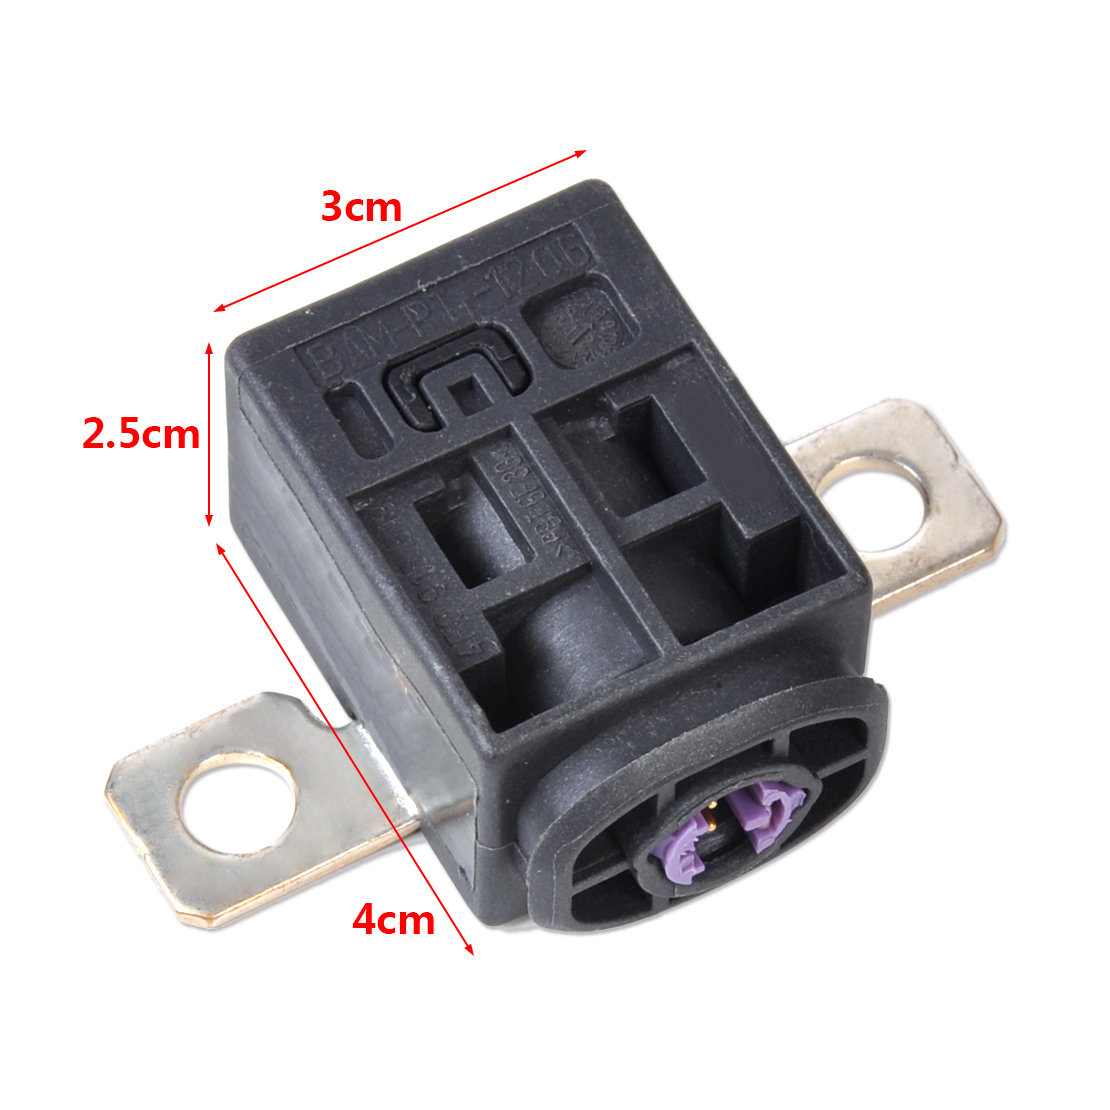 4f0915519 battery fuse overload protection for audi a3 a4 a5 a6 a8 q5 q7 tt vw ebay. Black Bedroom Furniture Sets. Home Design Ideas